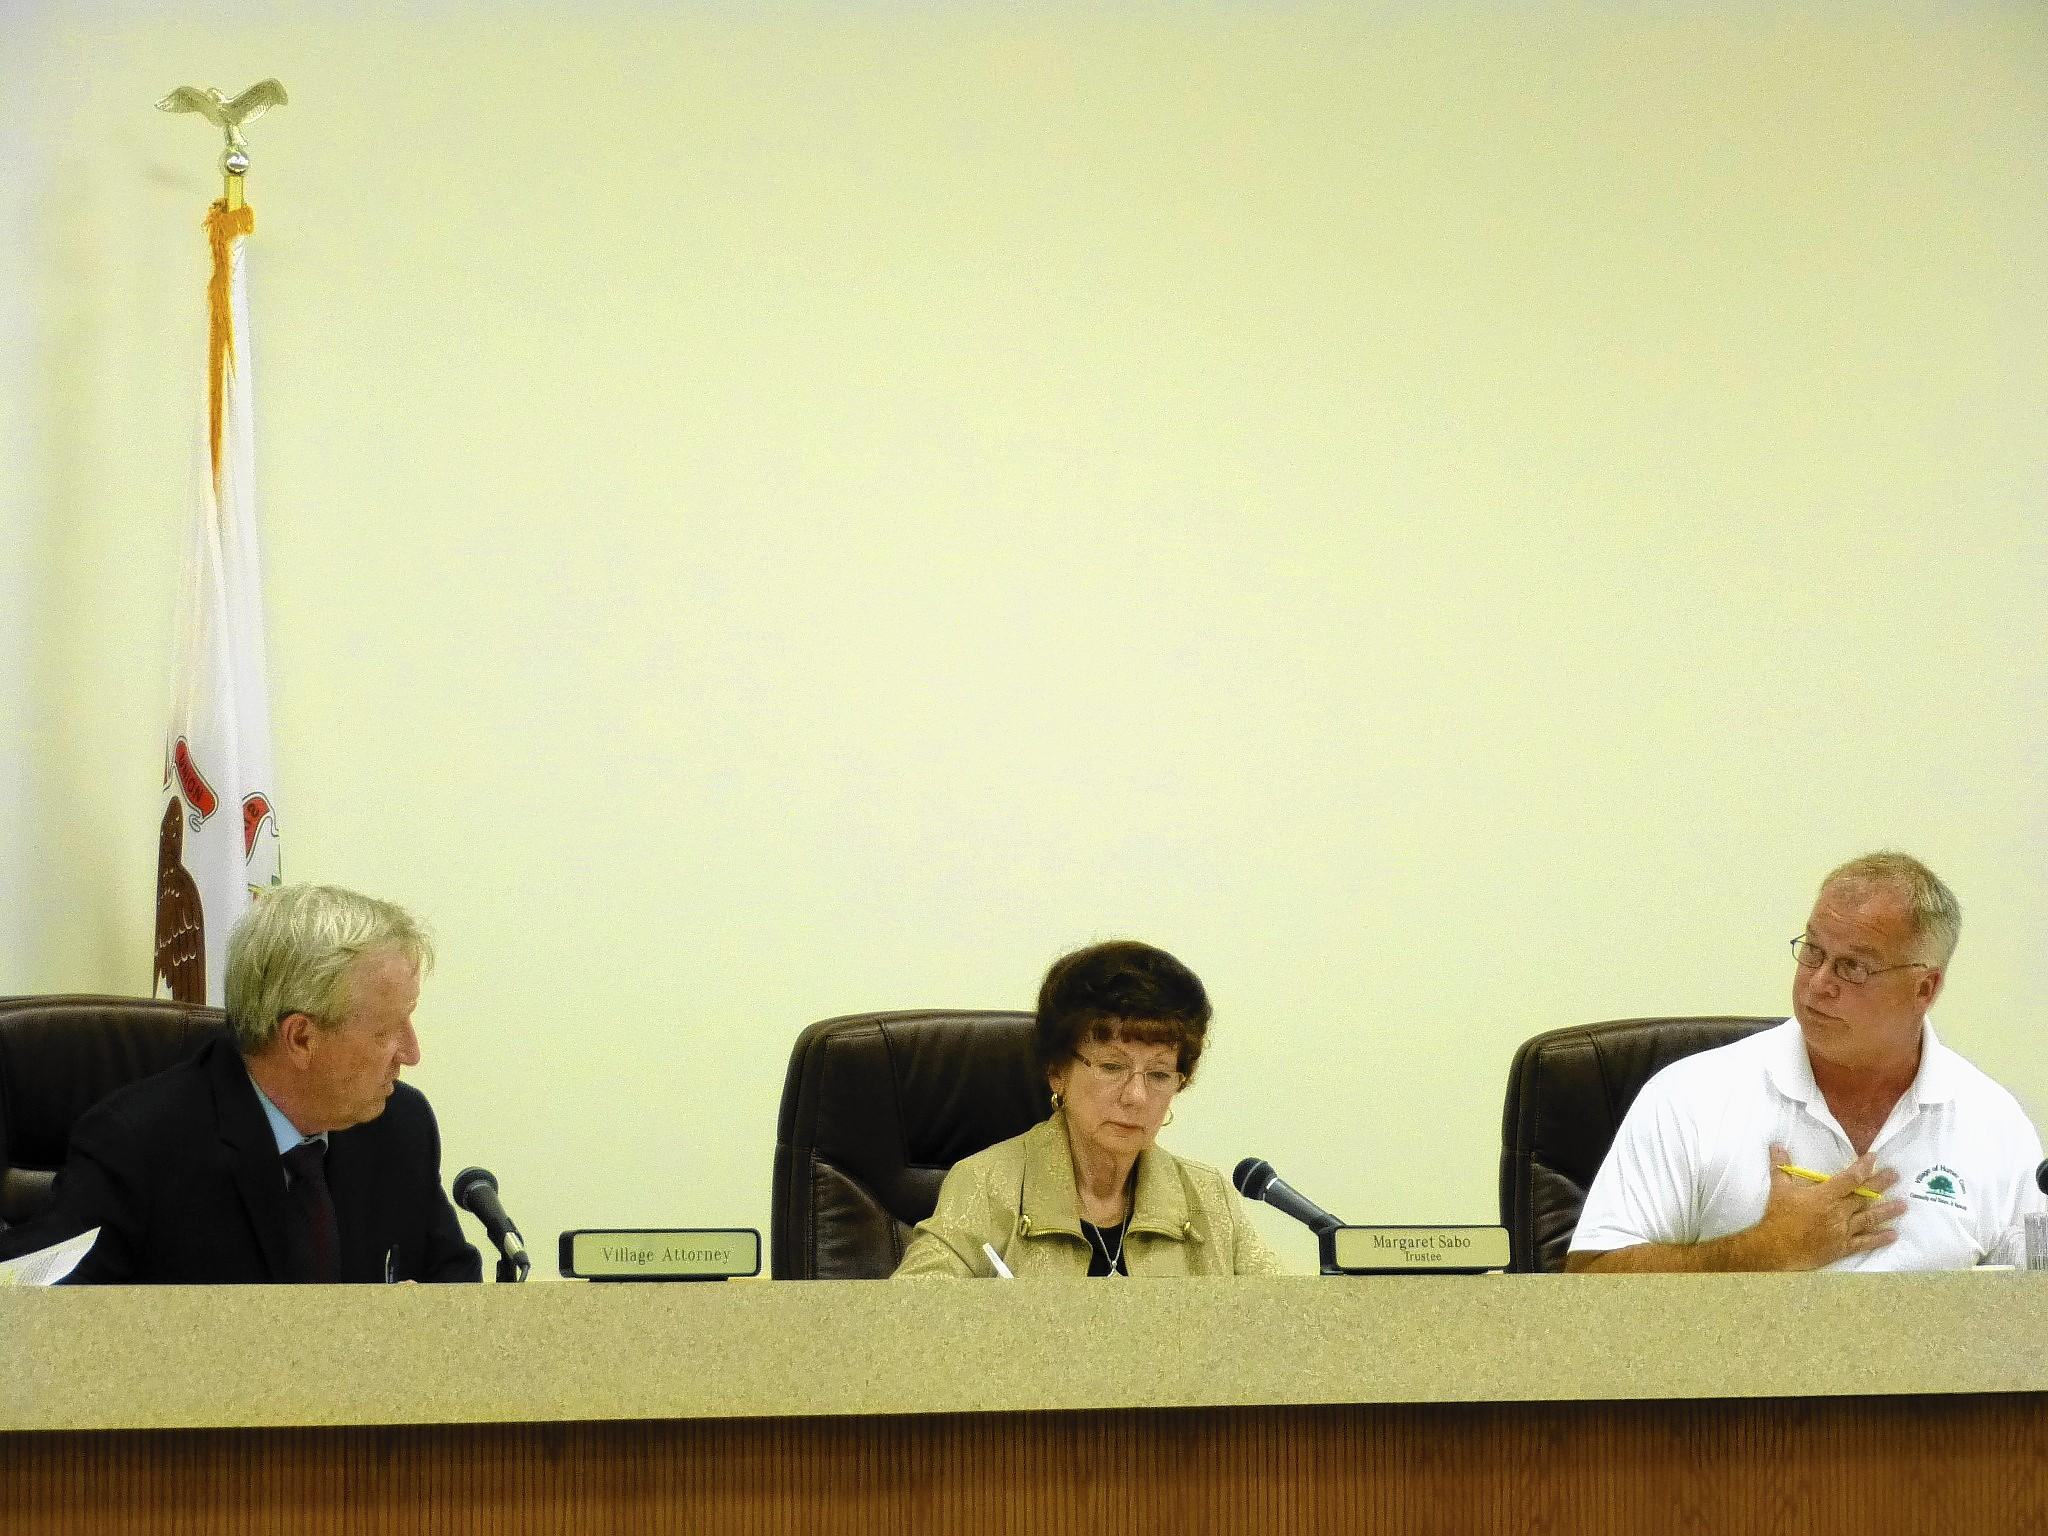 Village Attorney Mark Sterk, left, Trustee Margaret Sabo and Trustee George Yukich at the July 8 workshop.